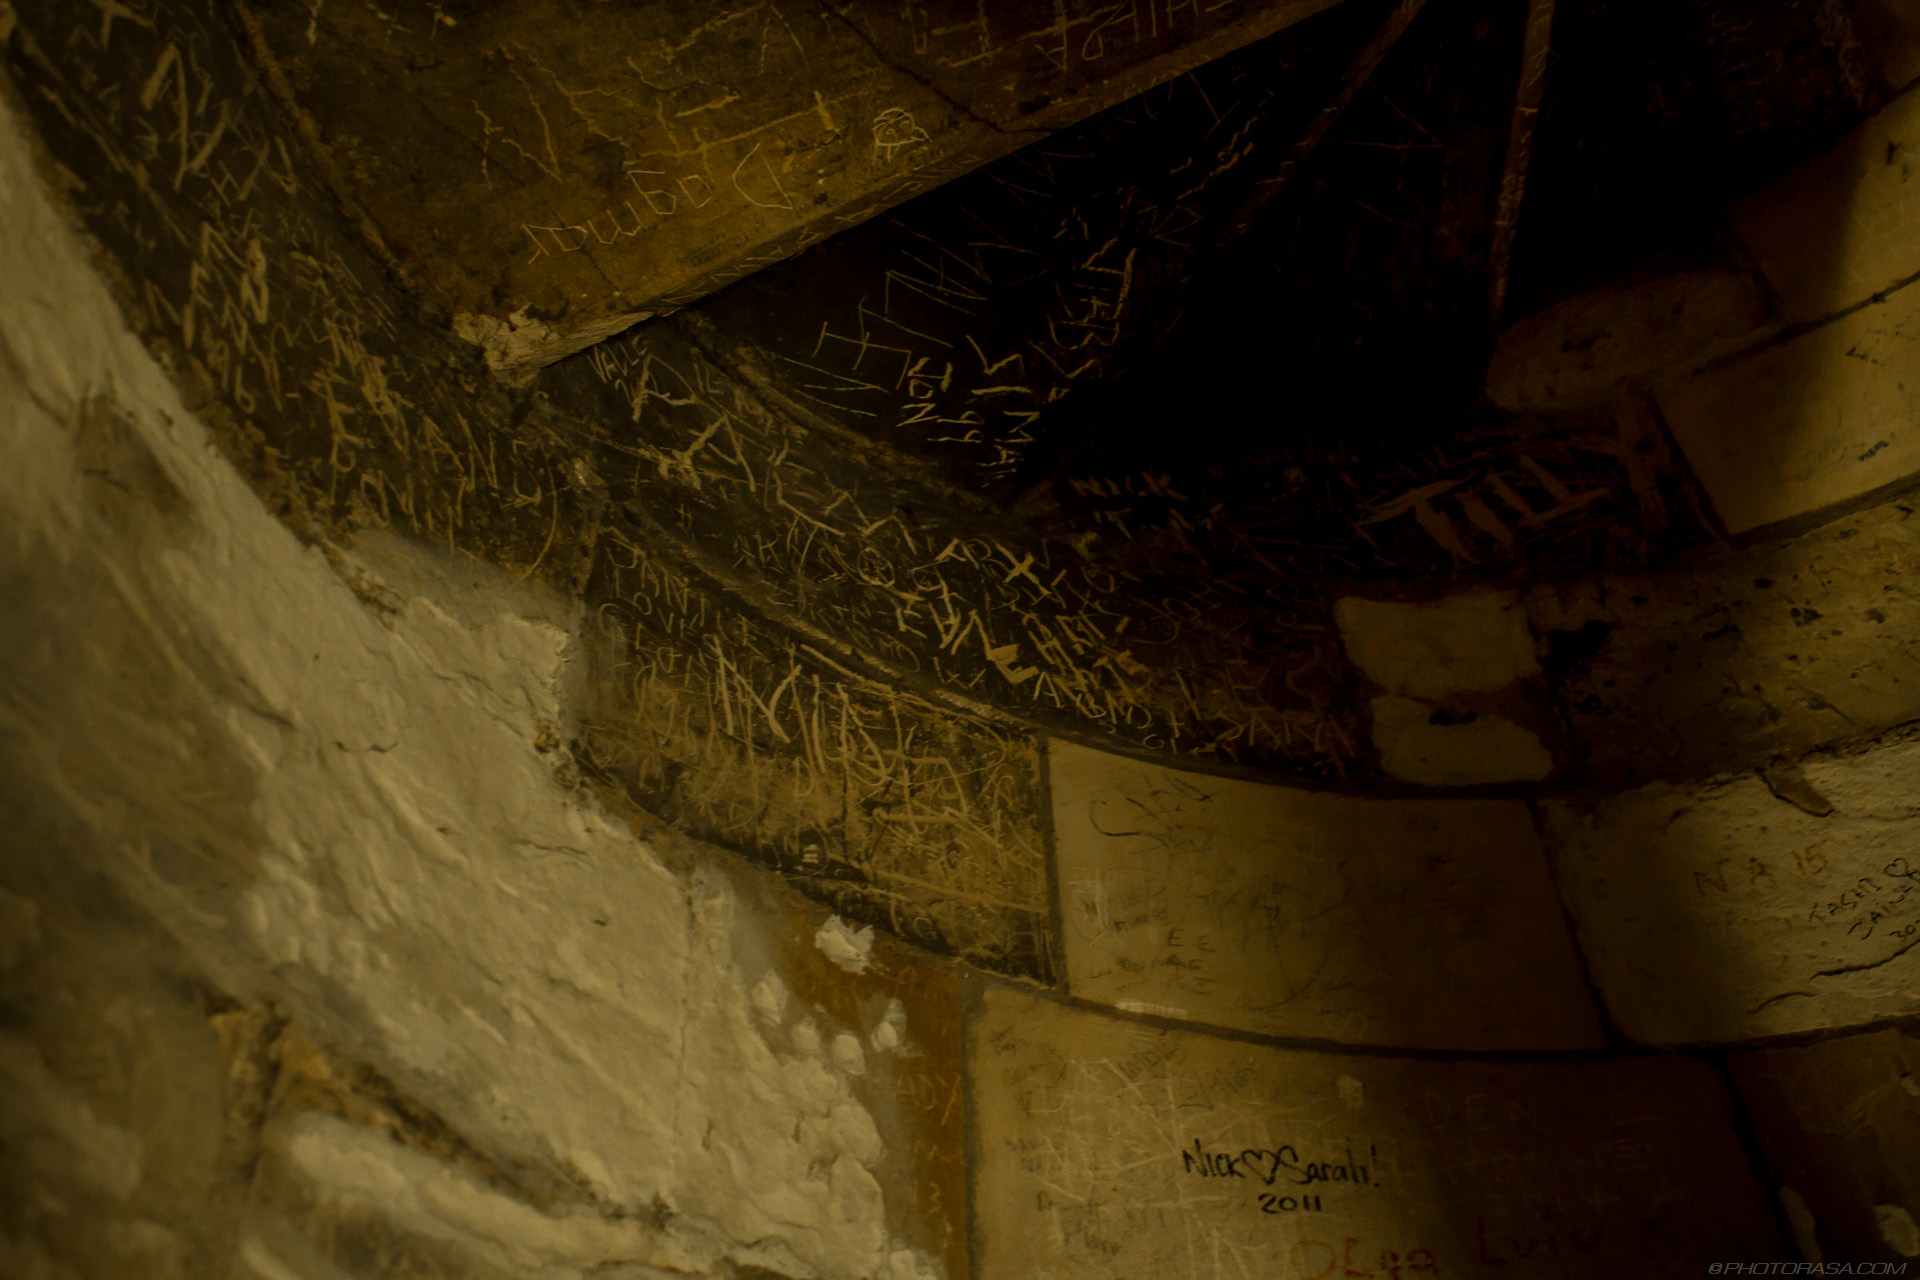 http://photorasa.com/places/yorkminster-cathedral/attachment/old-graffiti/